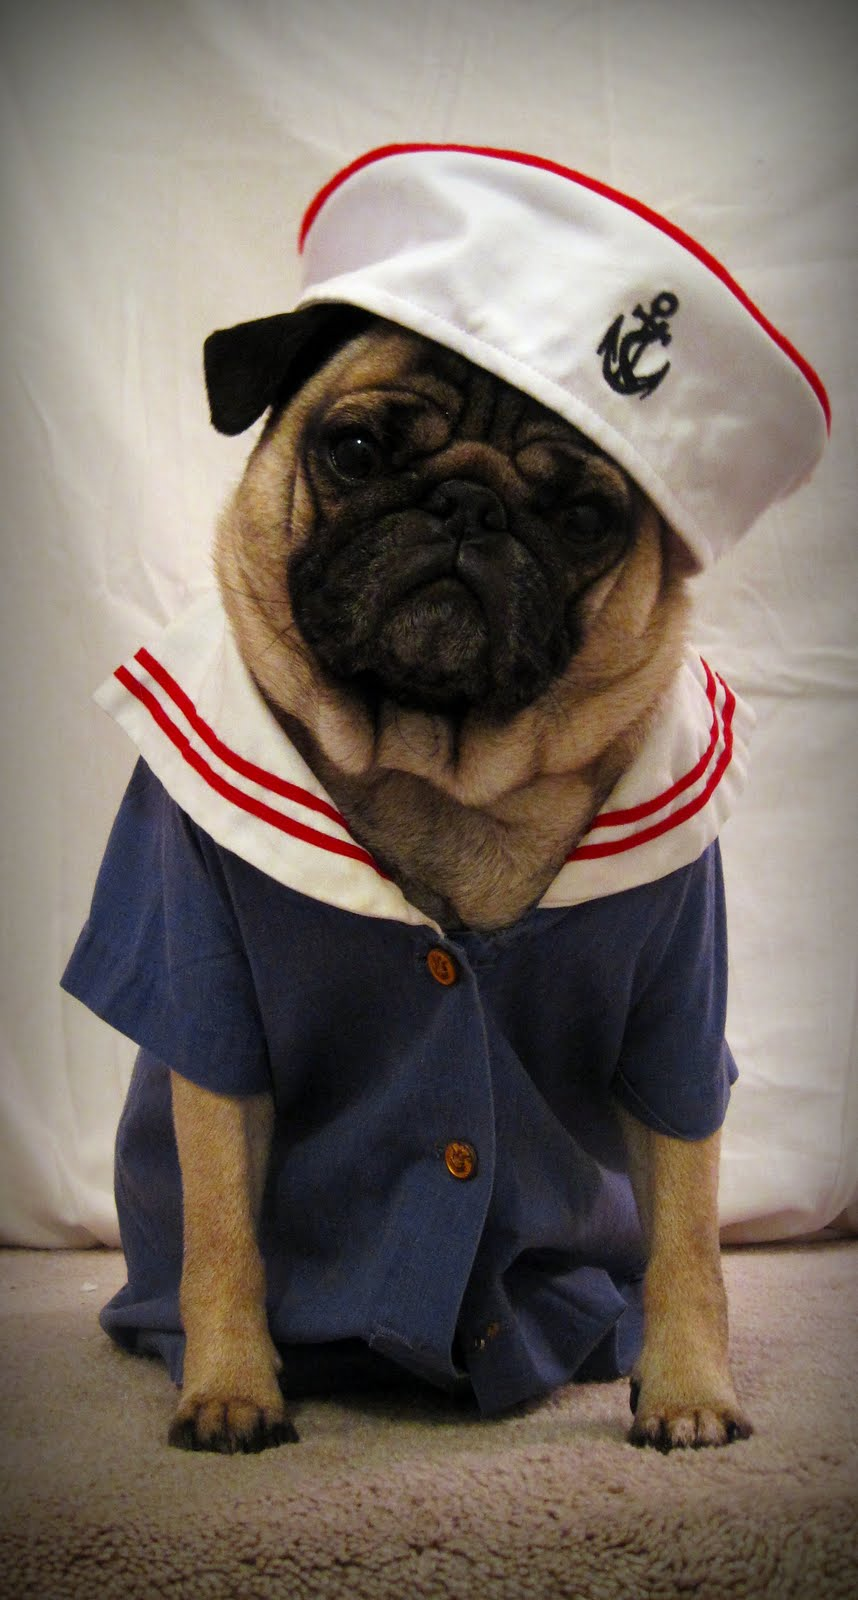 Clothes For Pug Dress The Dog Clothes For Your Pets